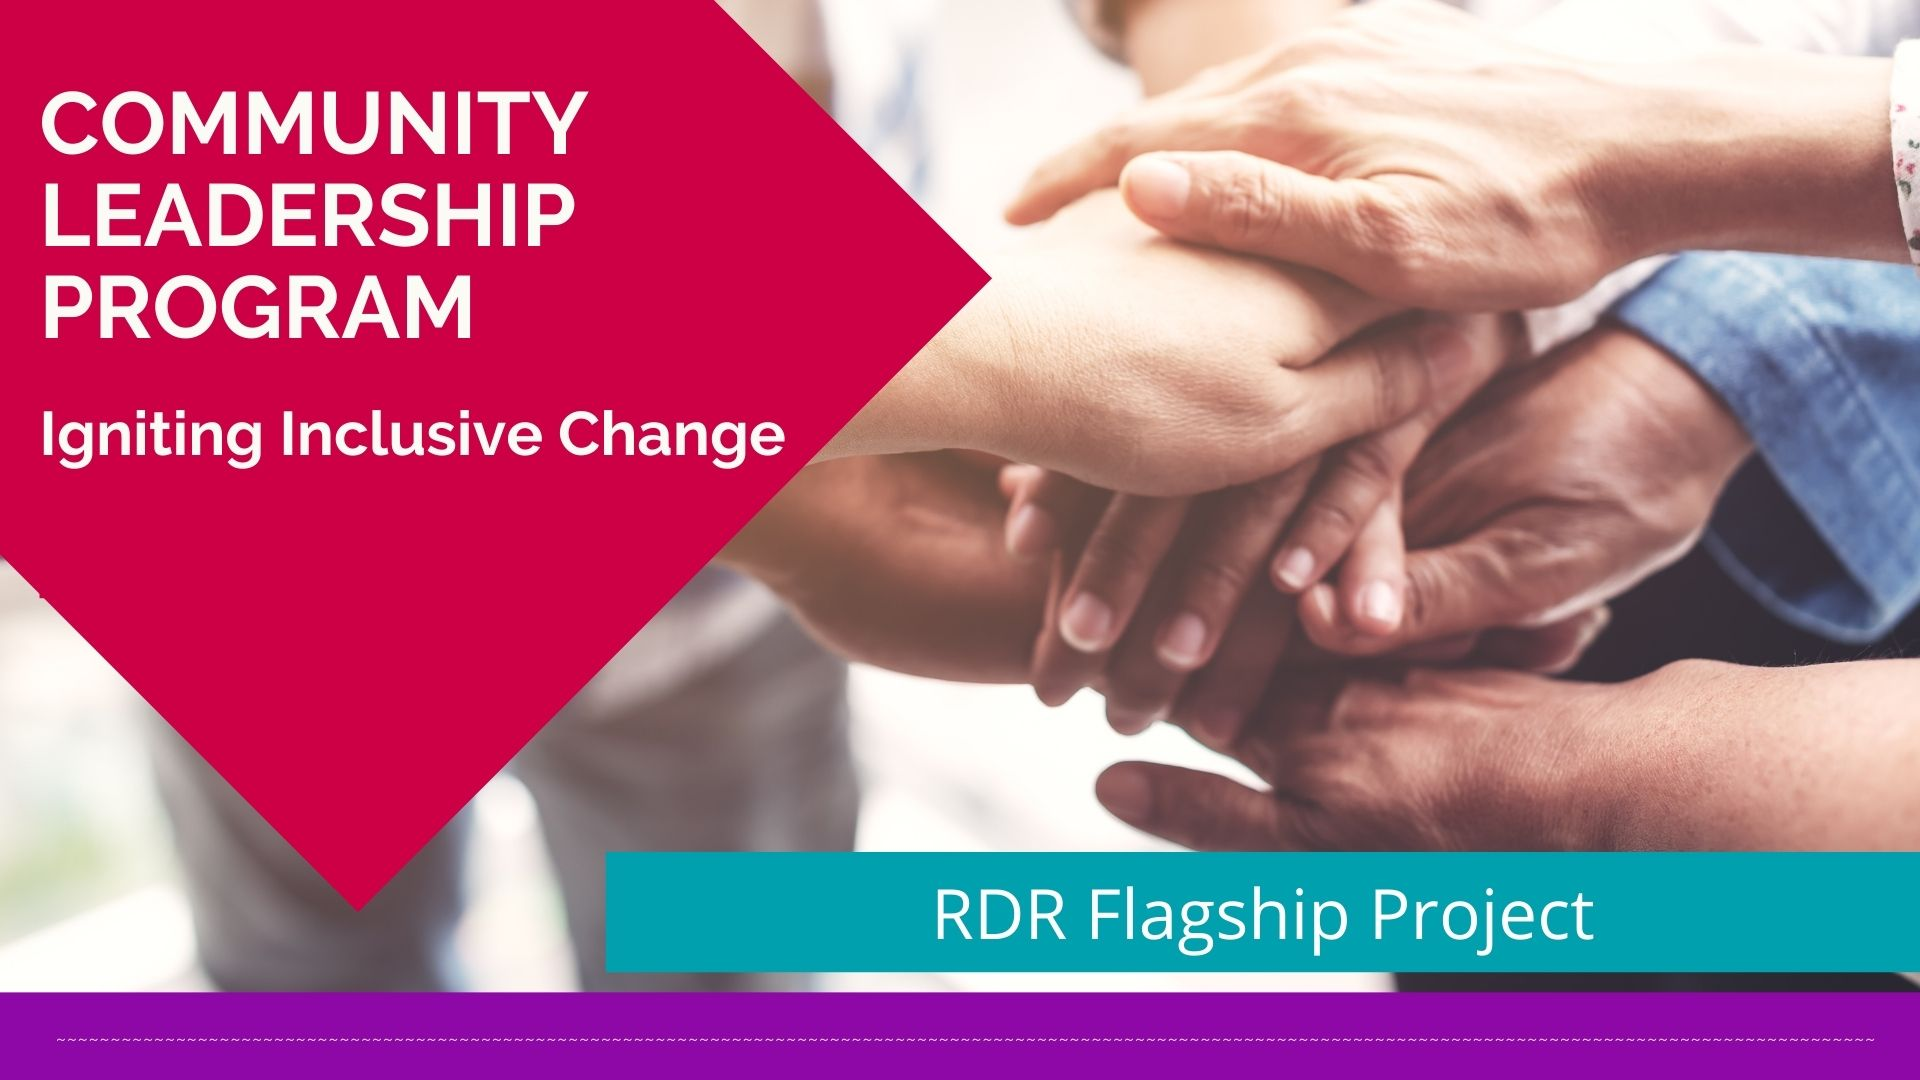 Community Leadership Program